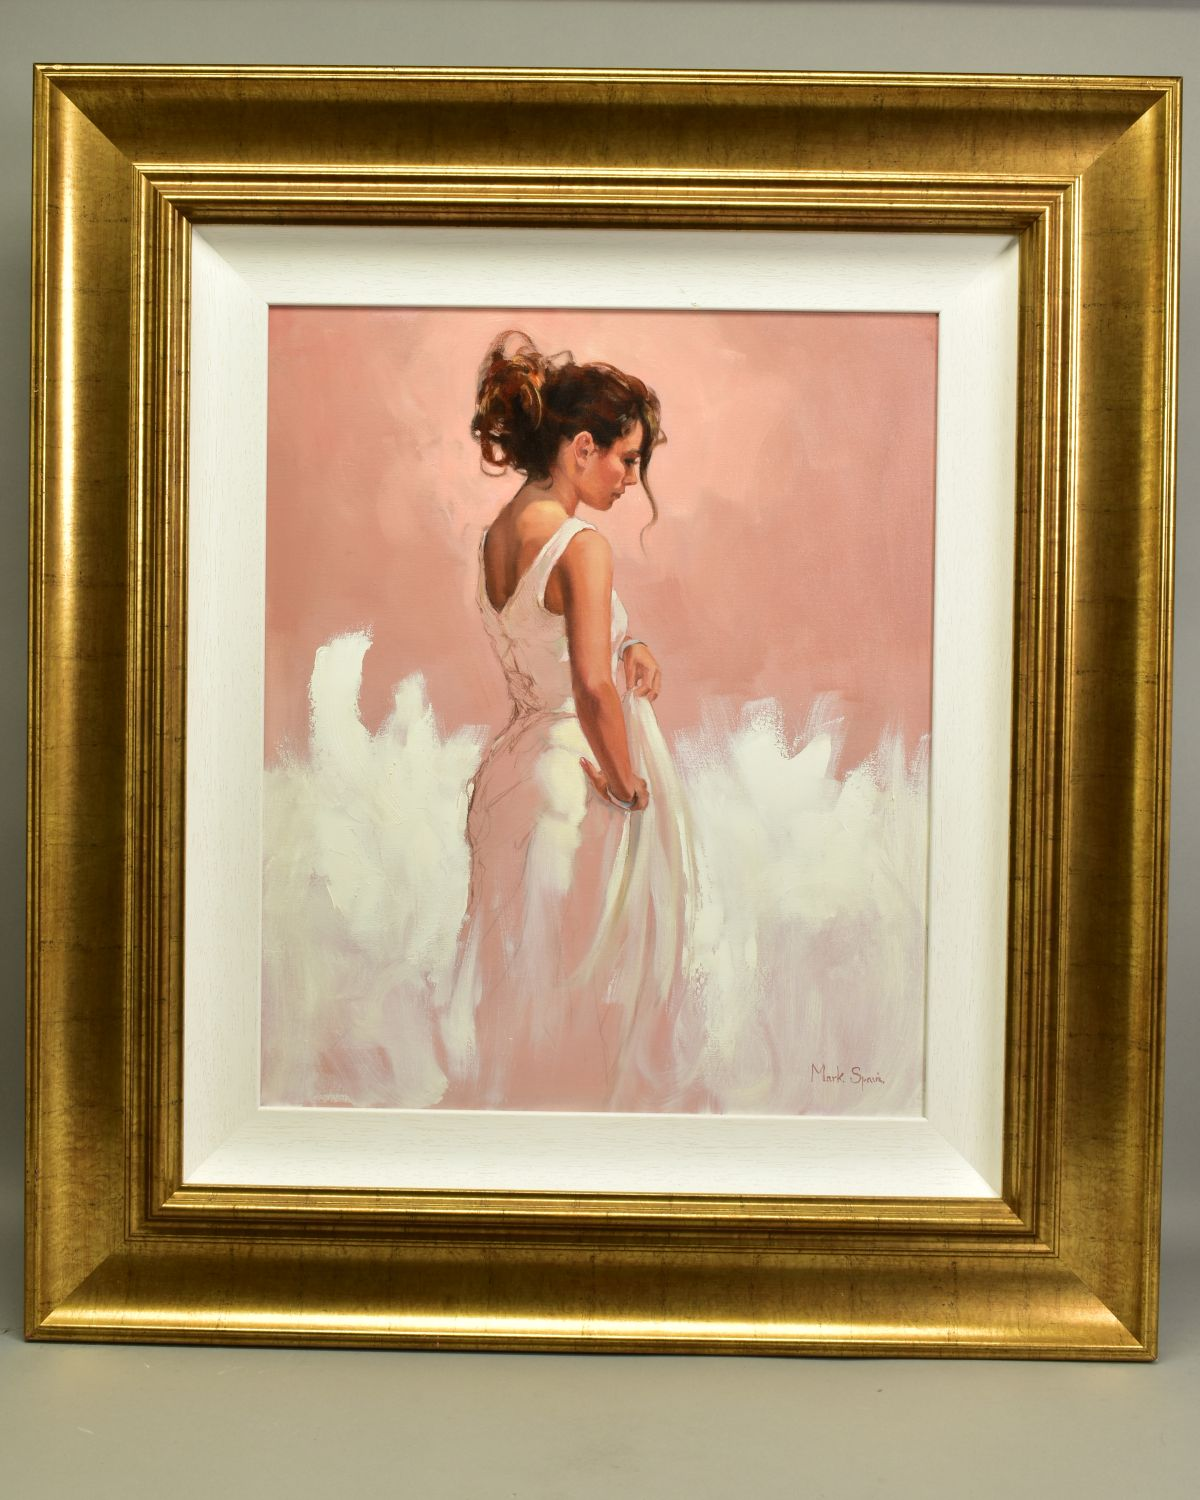 MARK SPAIN (BRITISH CONTEMPORARY), 'Woman In White', a female figure wearing a white dress, signed